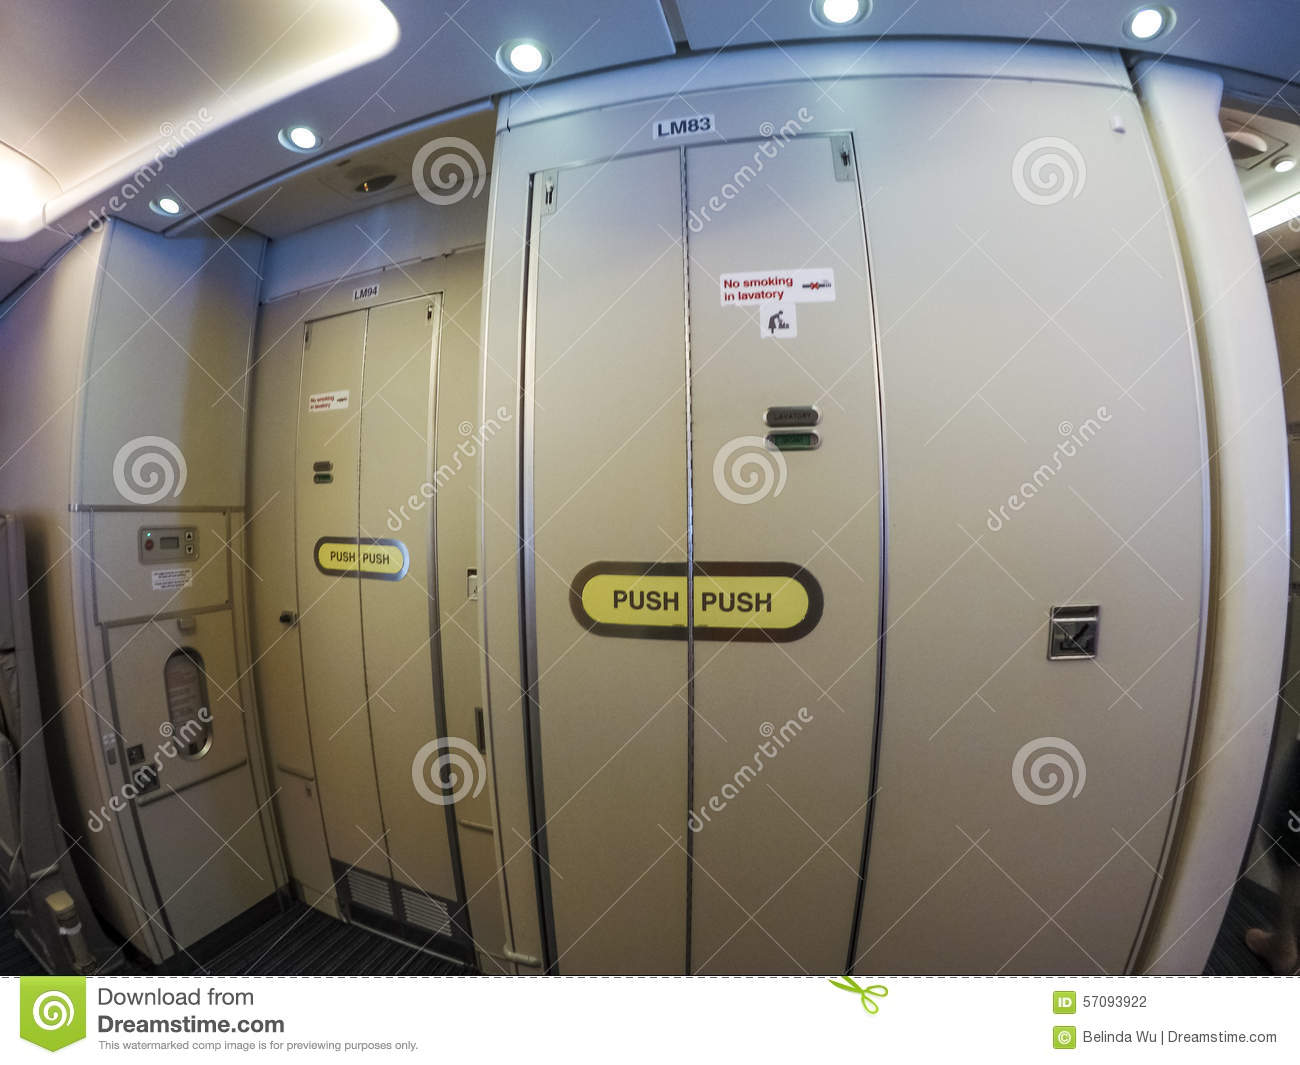 Aircraft Lavatory Stock Photo - Image: 57093922